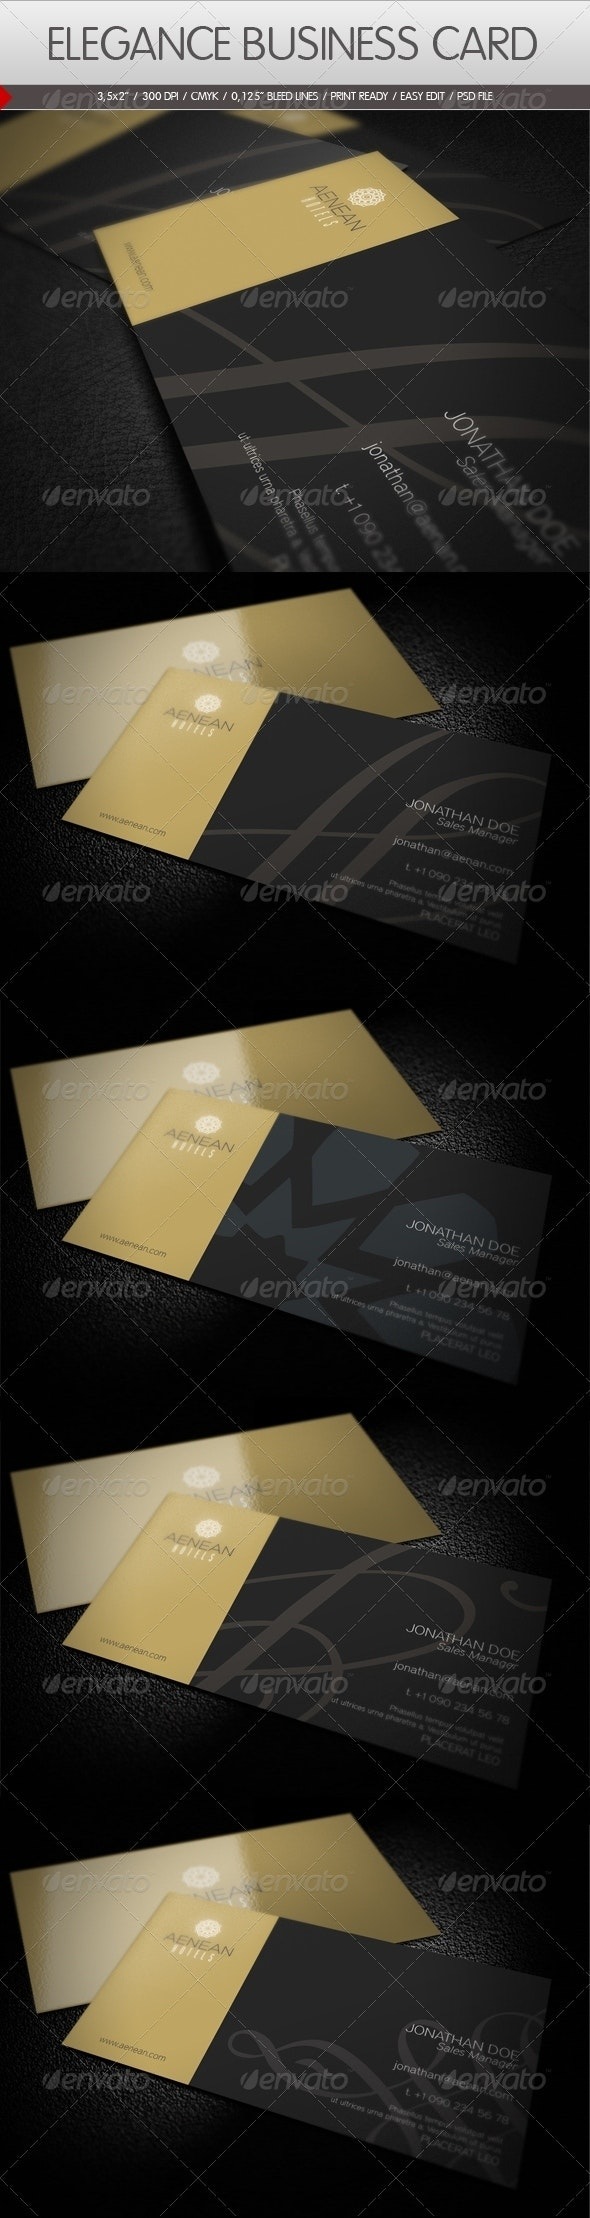 Elegance Business Card - Corporate Business Cards